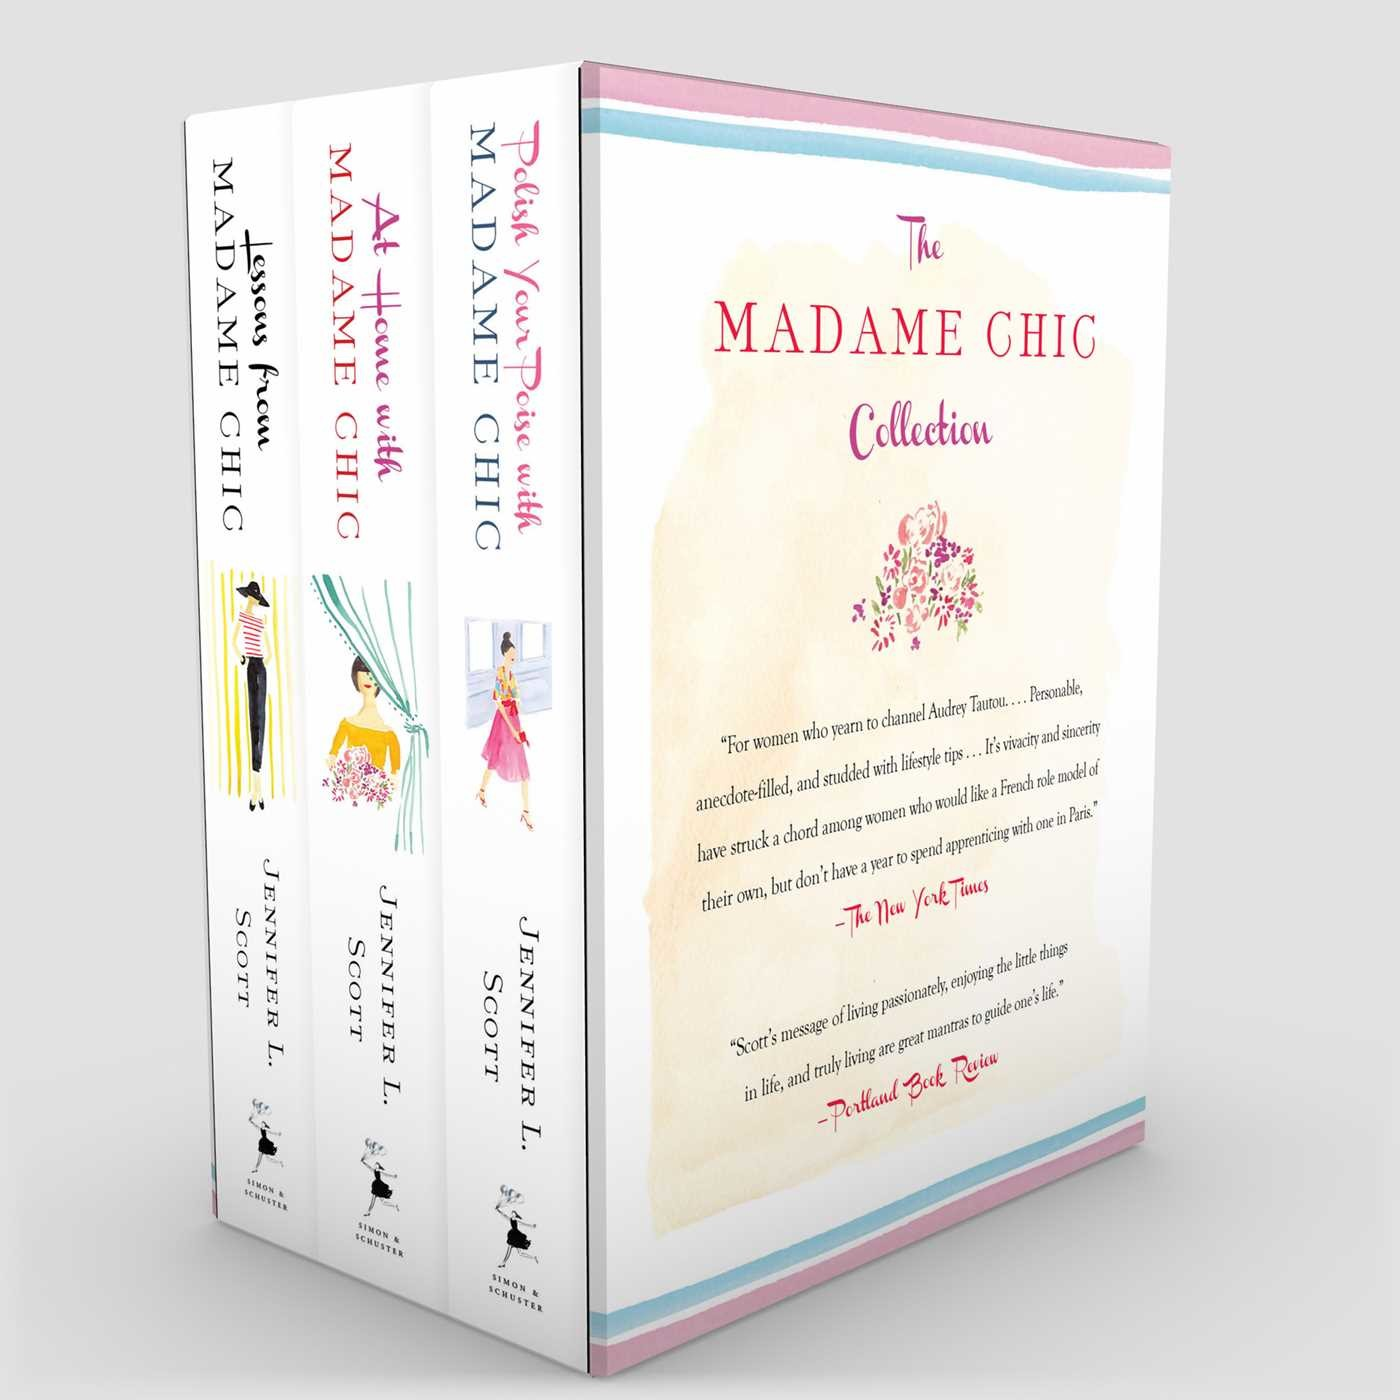 The madame chic collection 9781501147661.in17